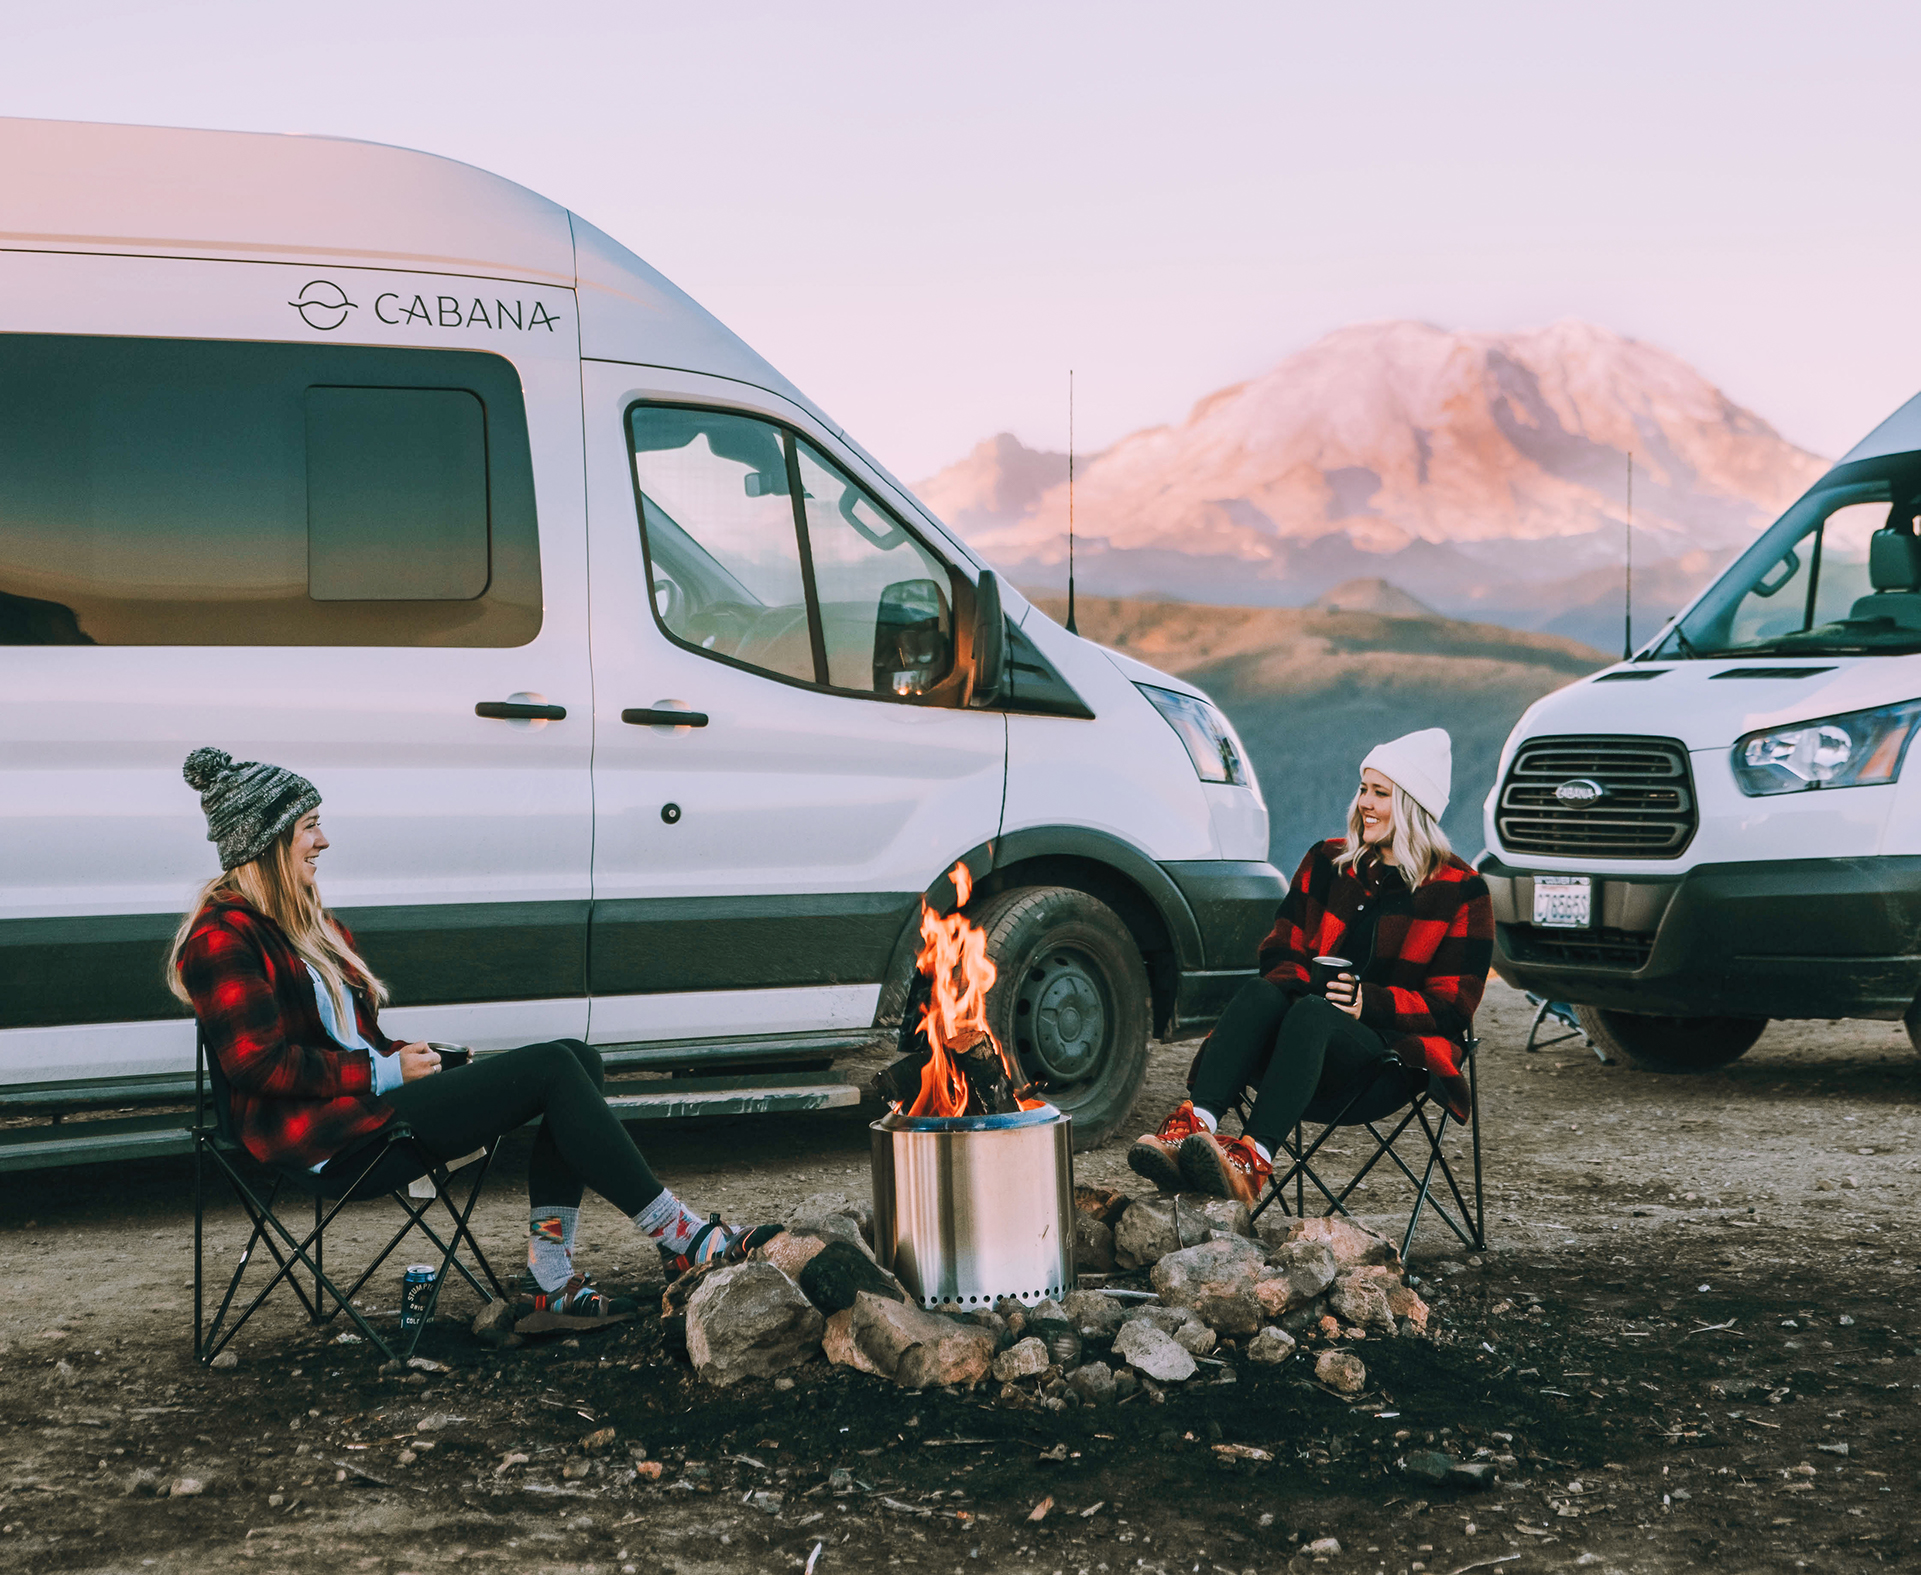 couple sitting around campfire, vans in the background